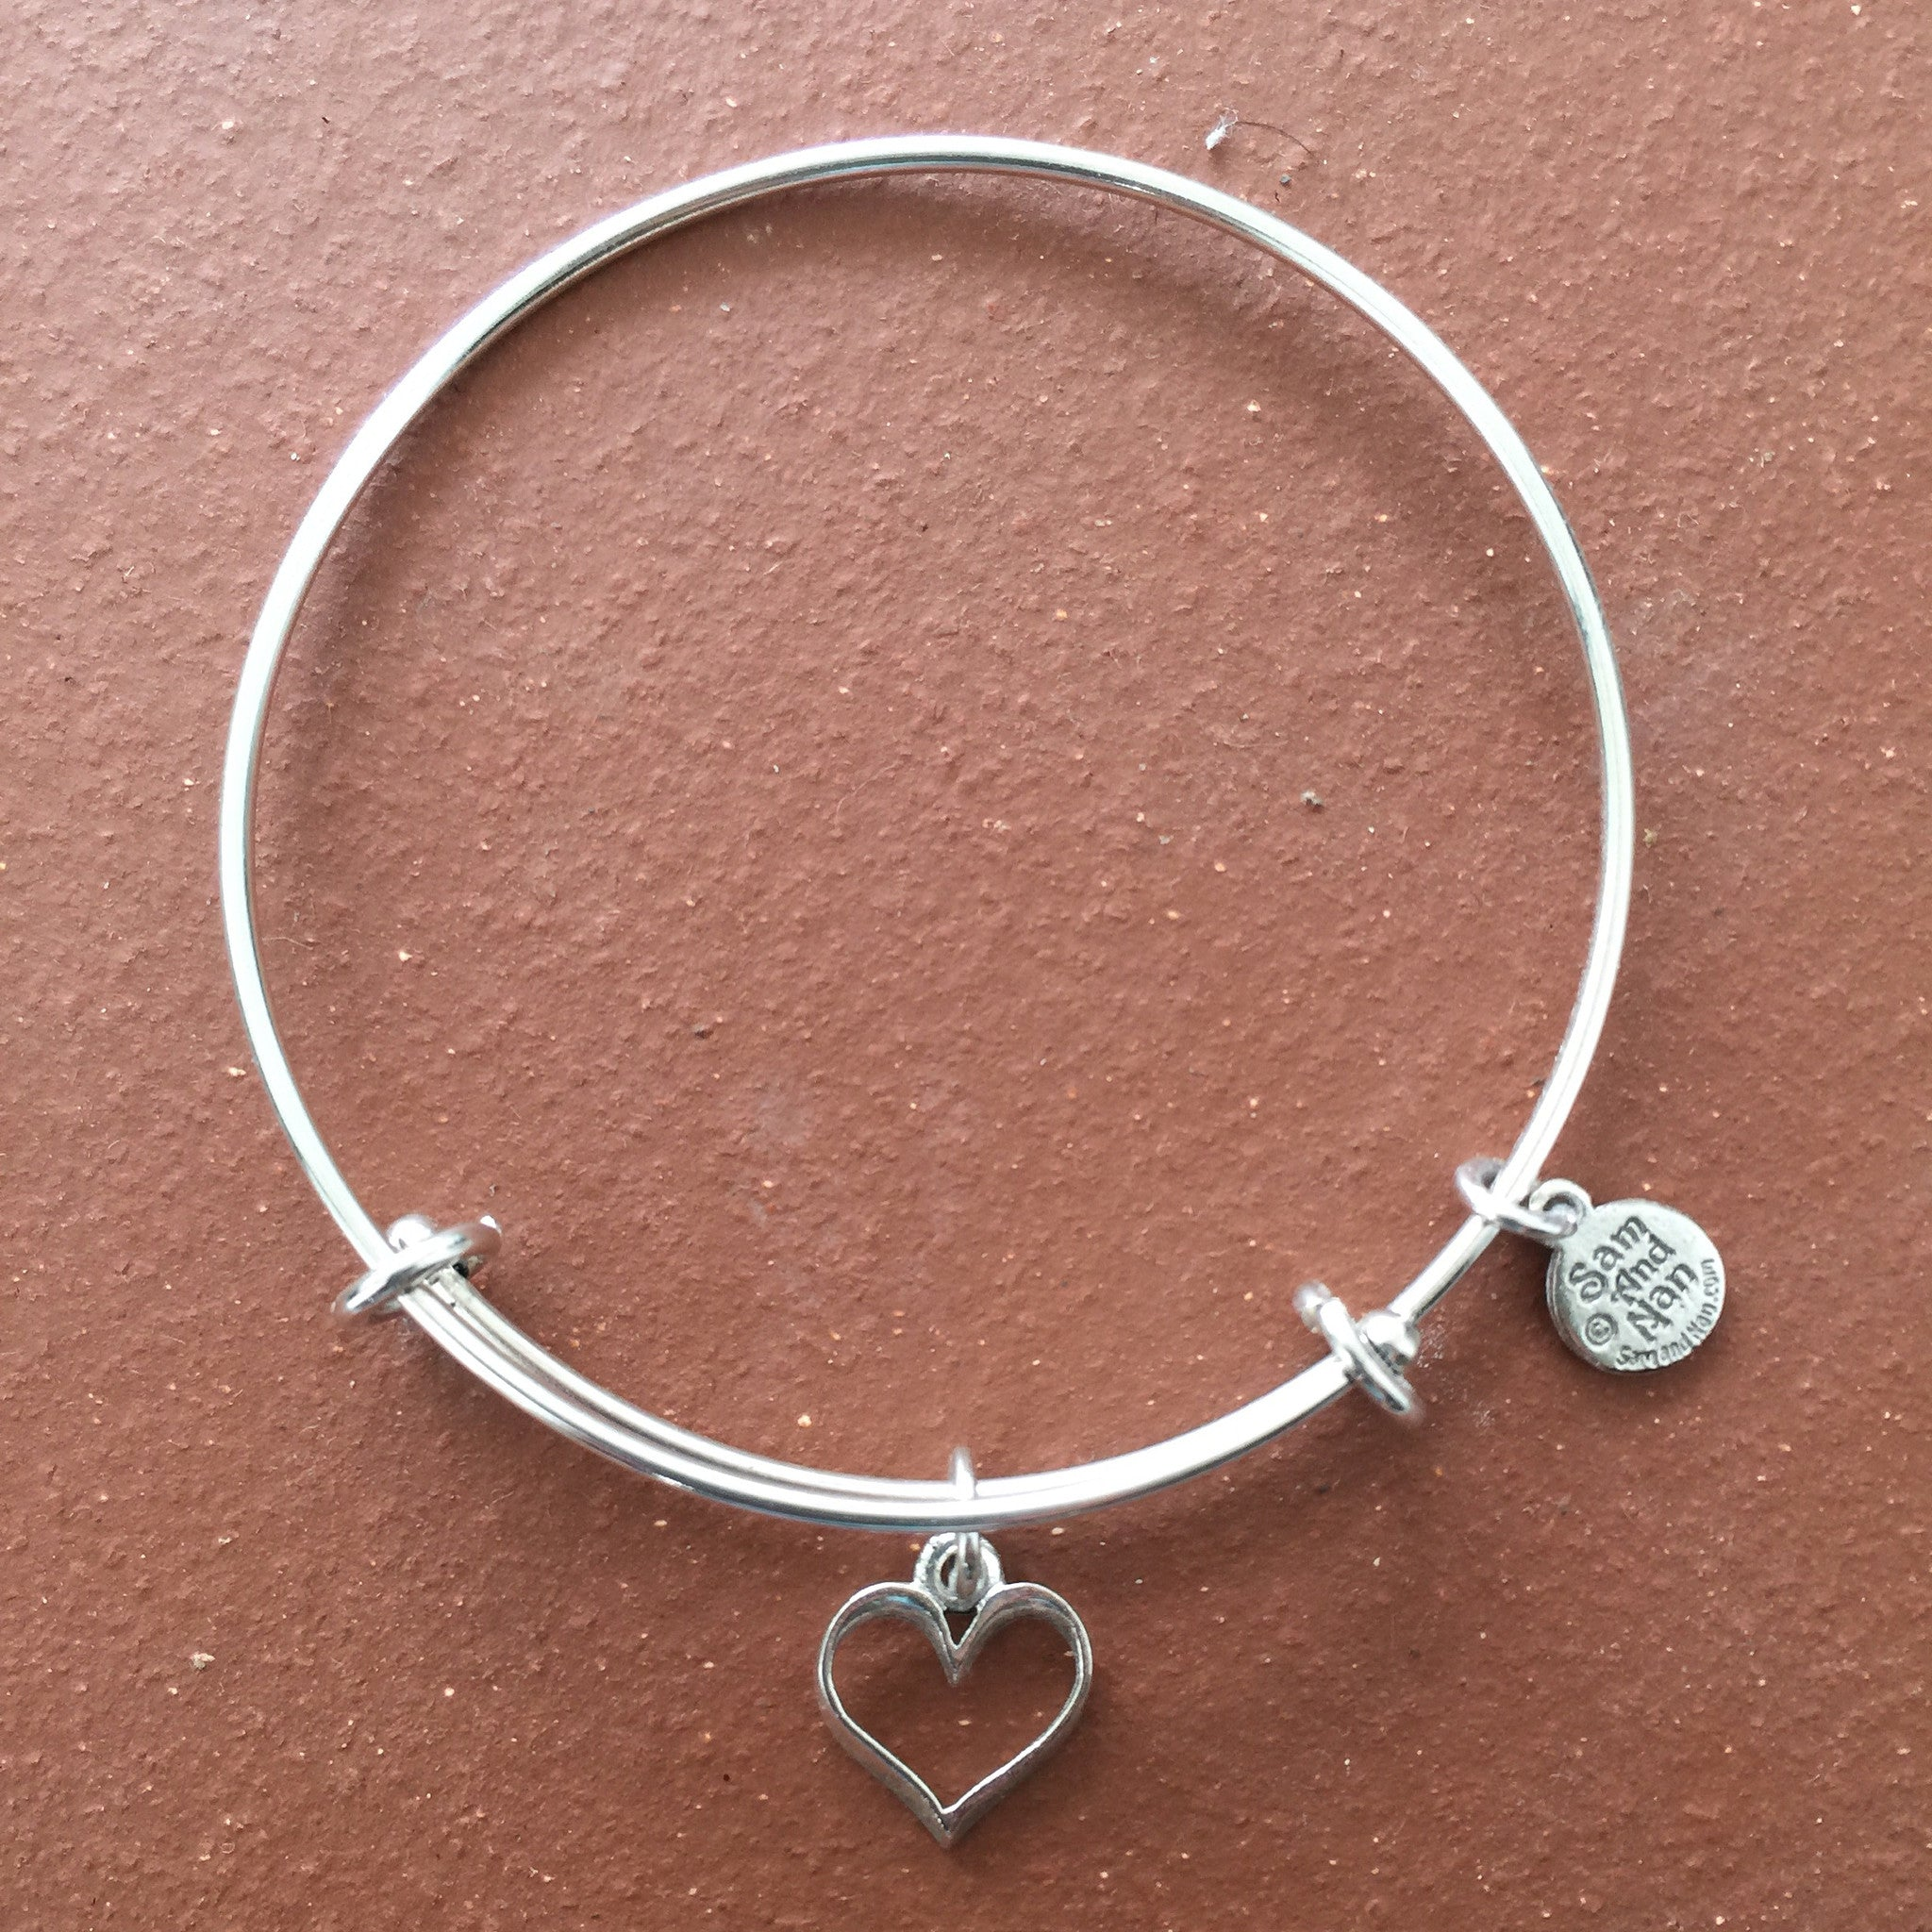 Silver Tubular Charm Heart Bangle Bracelet